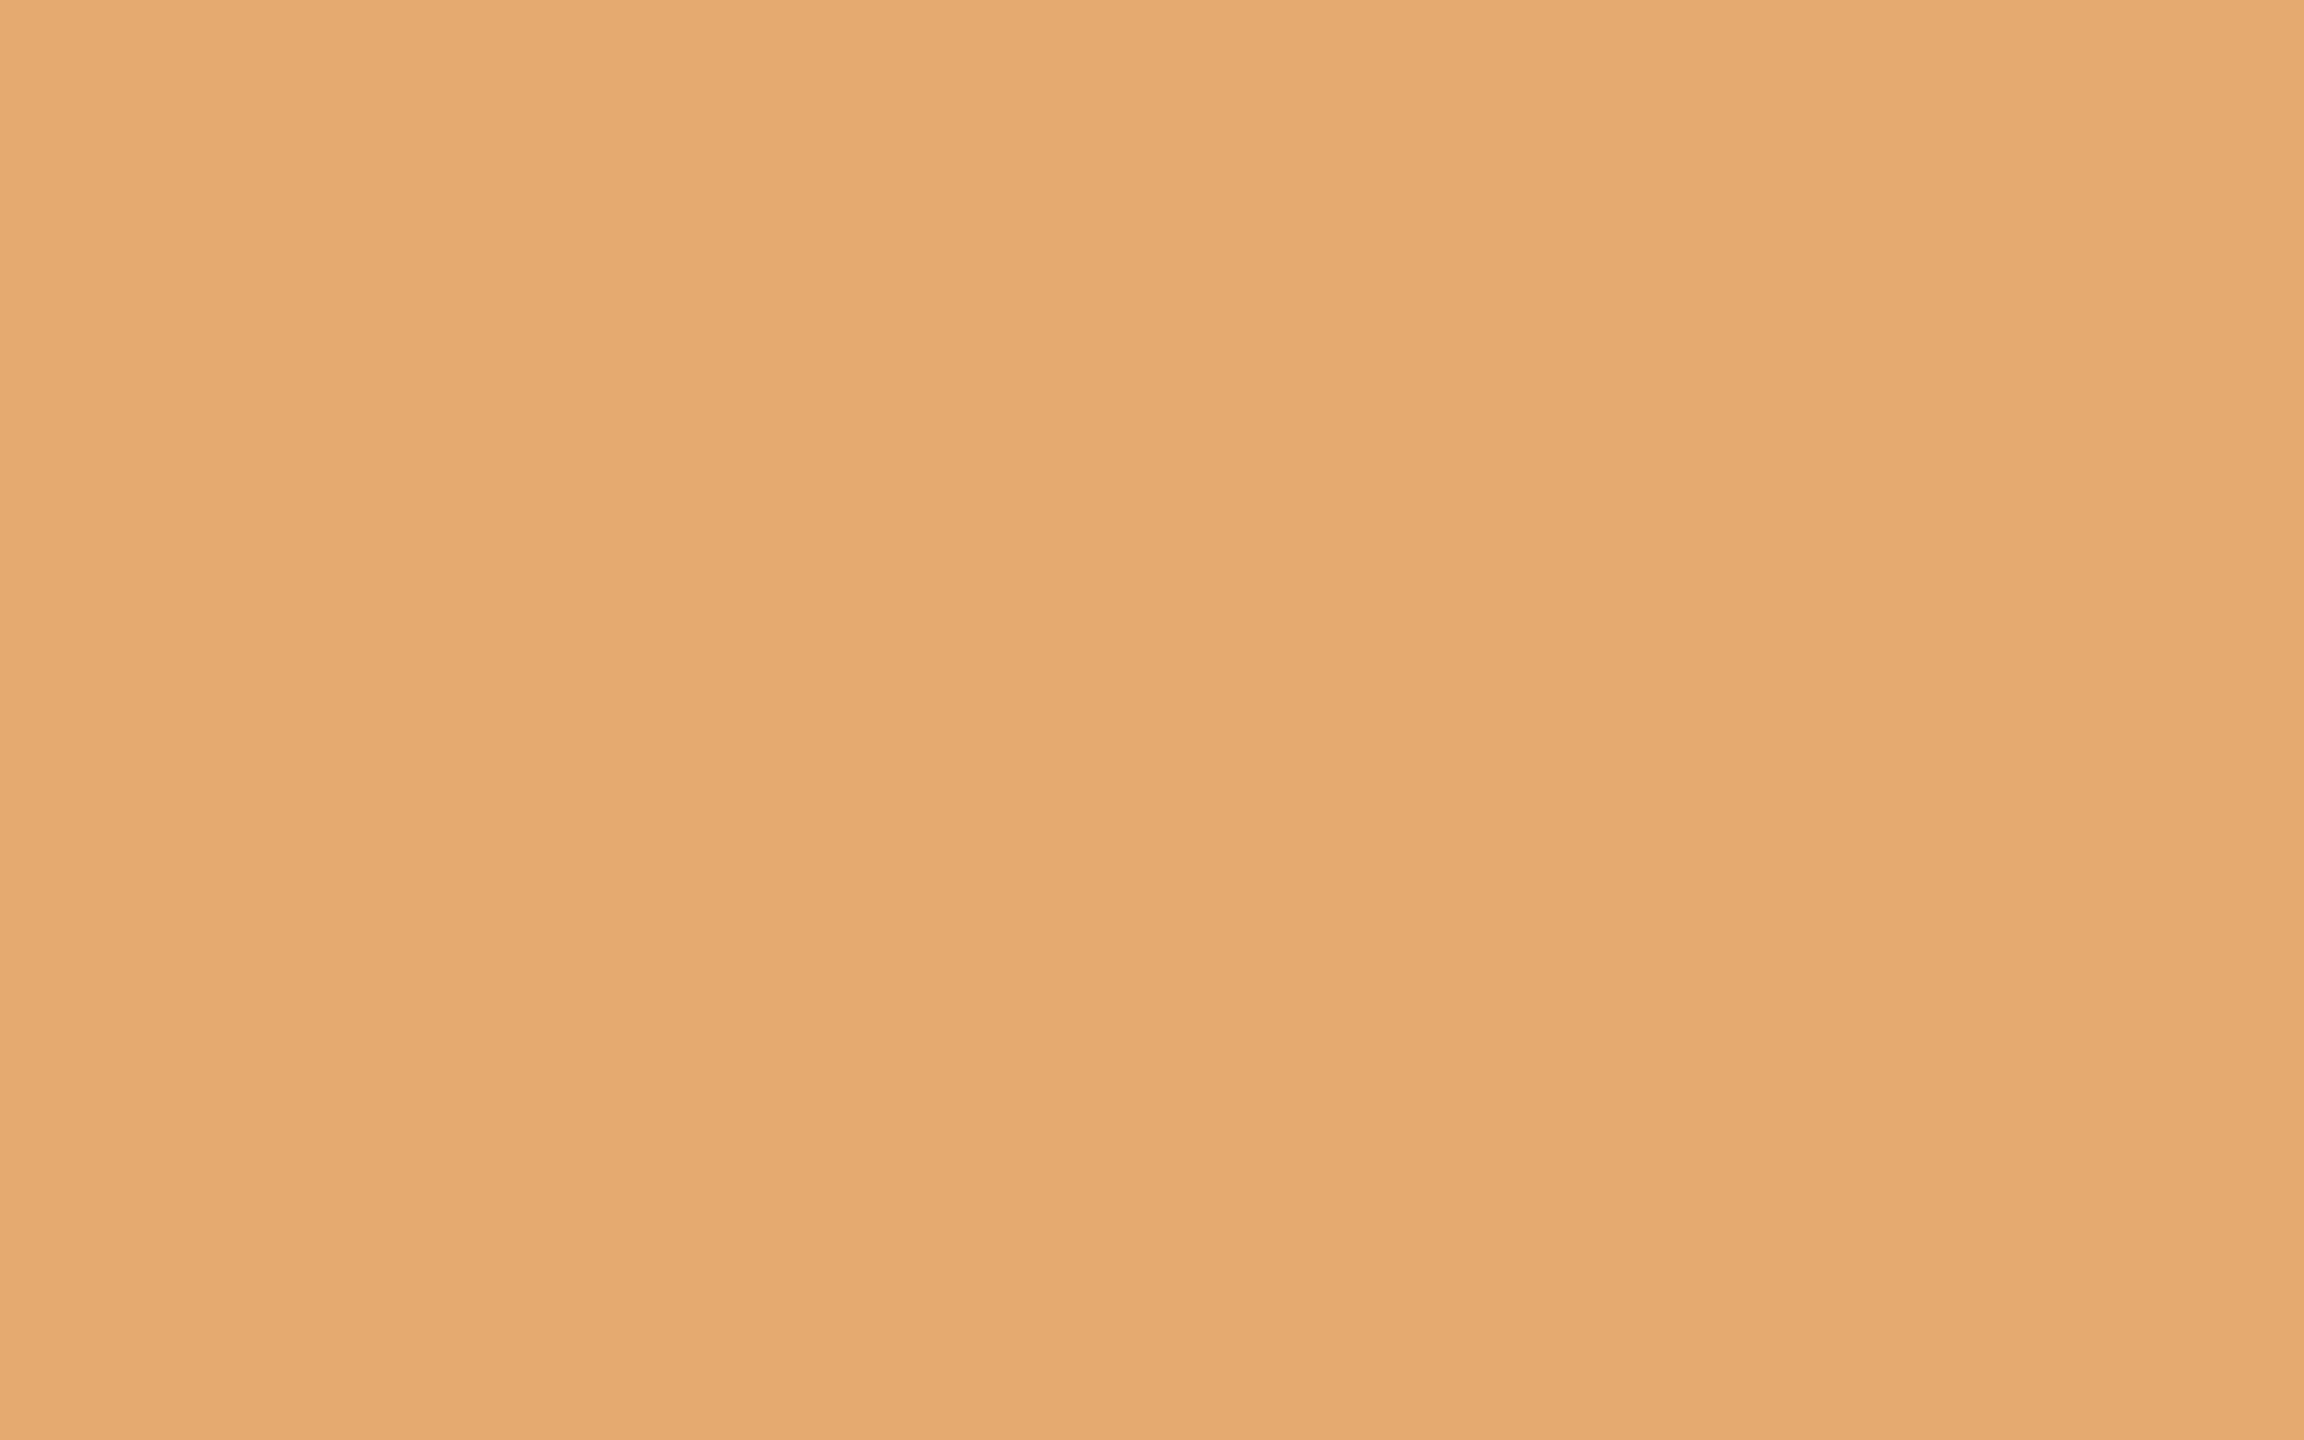 2304x1440 Fawn Solid Color Background